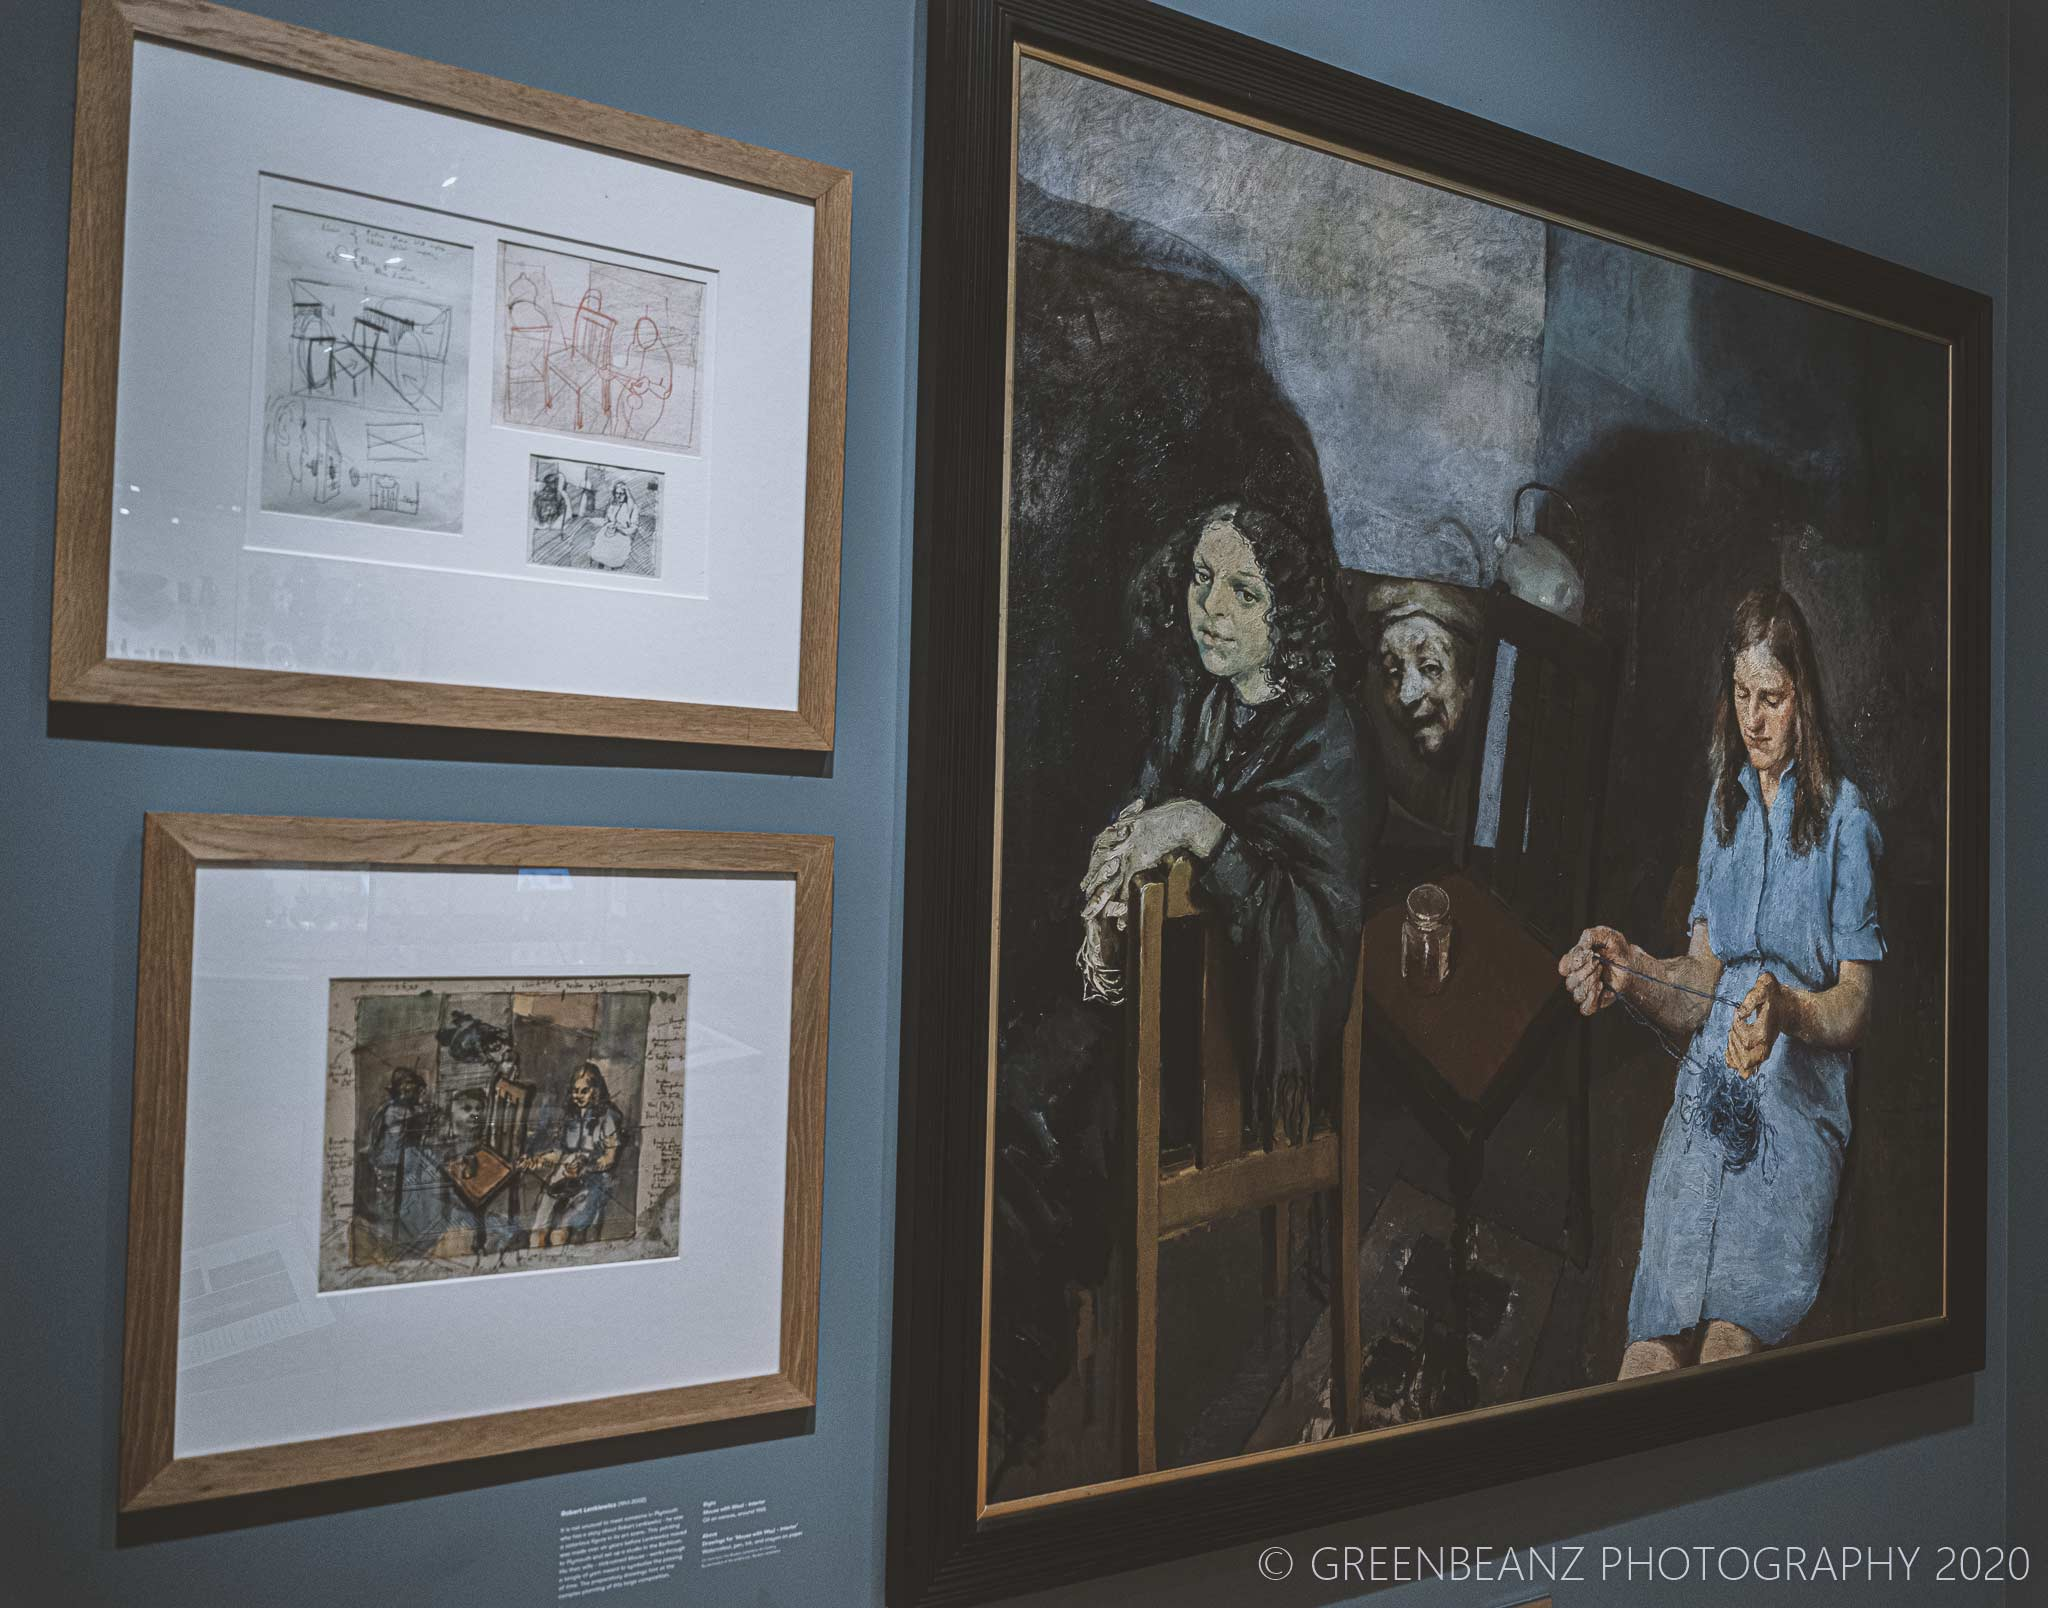 Robert Lenkiewicz's 'Mouse With Wool' at Plymouth's The Box Musems Art Collection